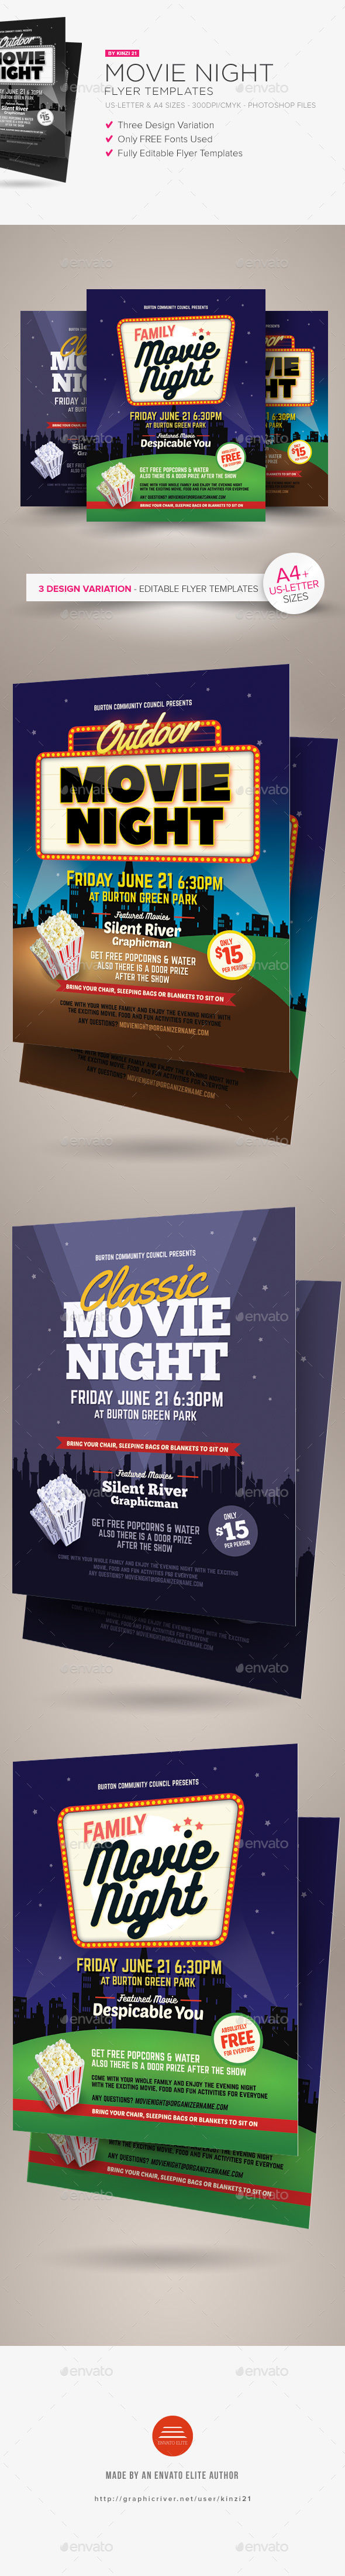 Movie Night Flyer Templates by Kinzi21 (Halloween party flyer)